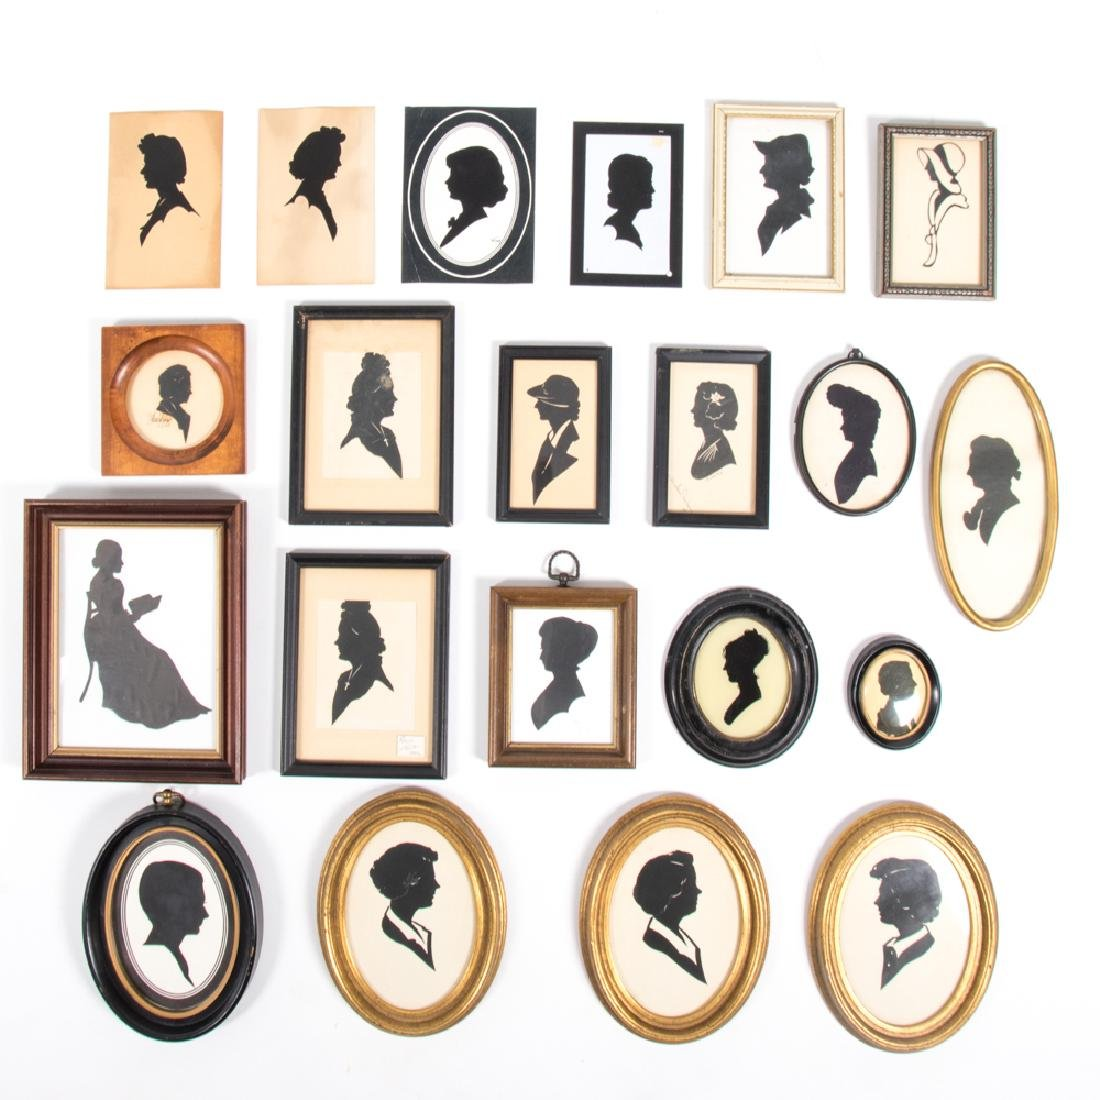 A Collection of Twenty-One Cut Paper and Reverse